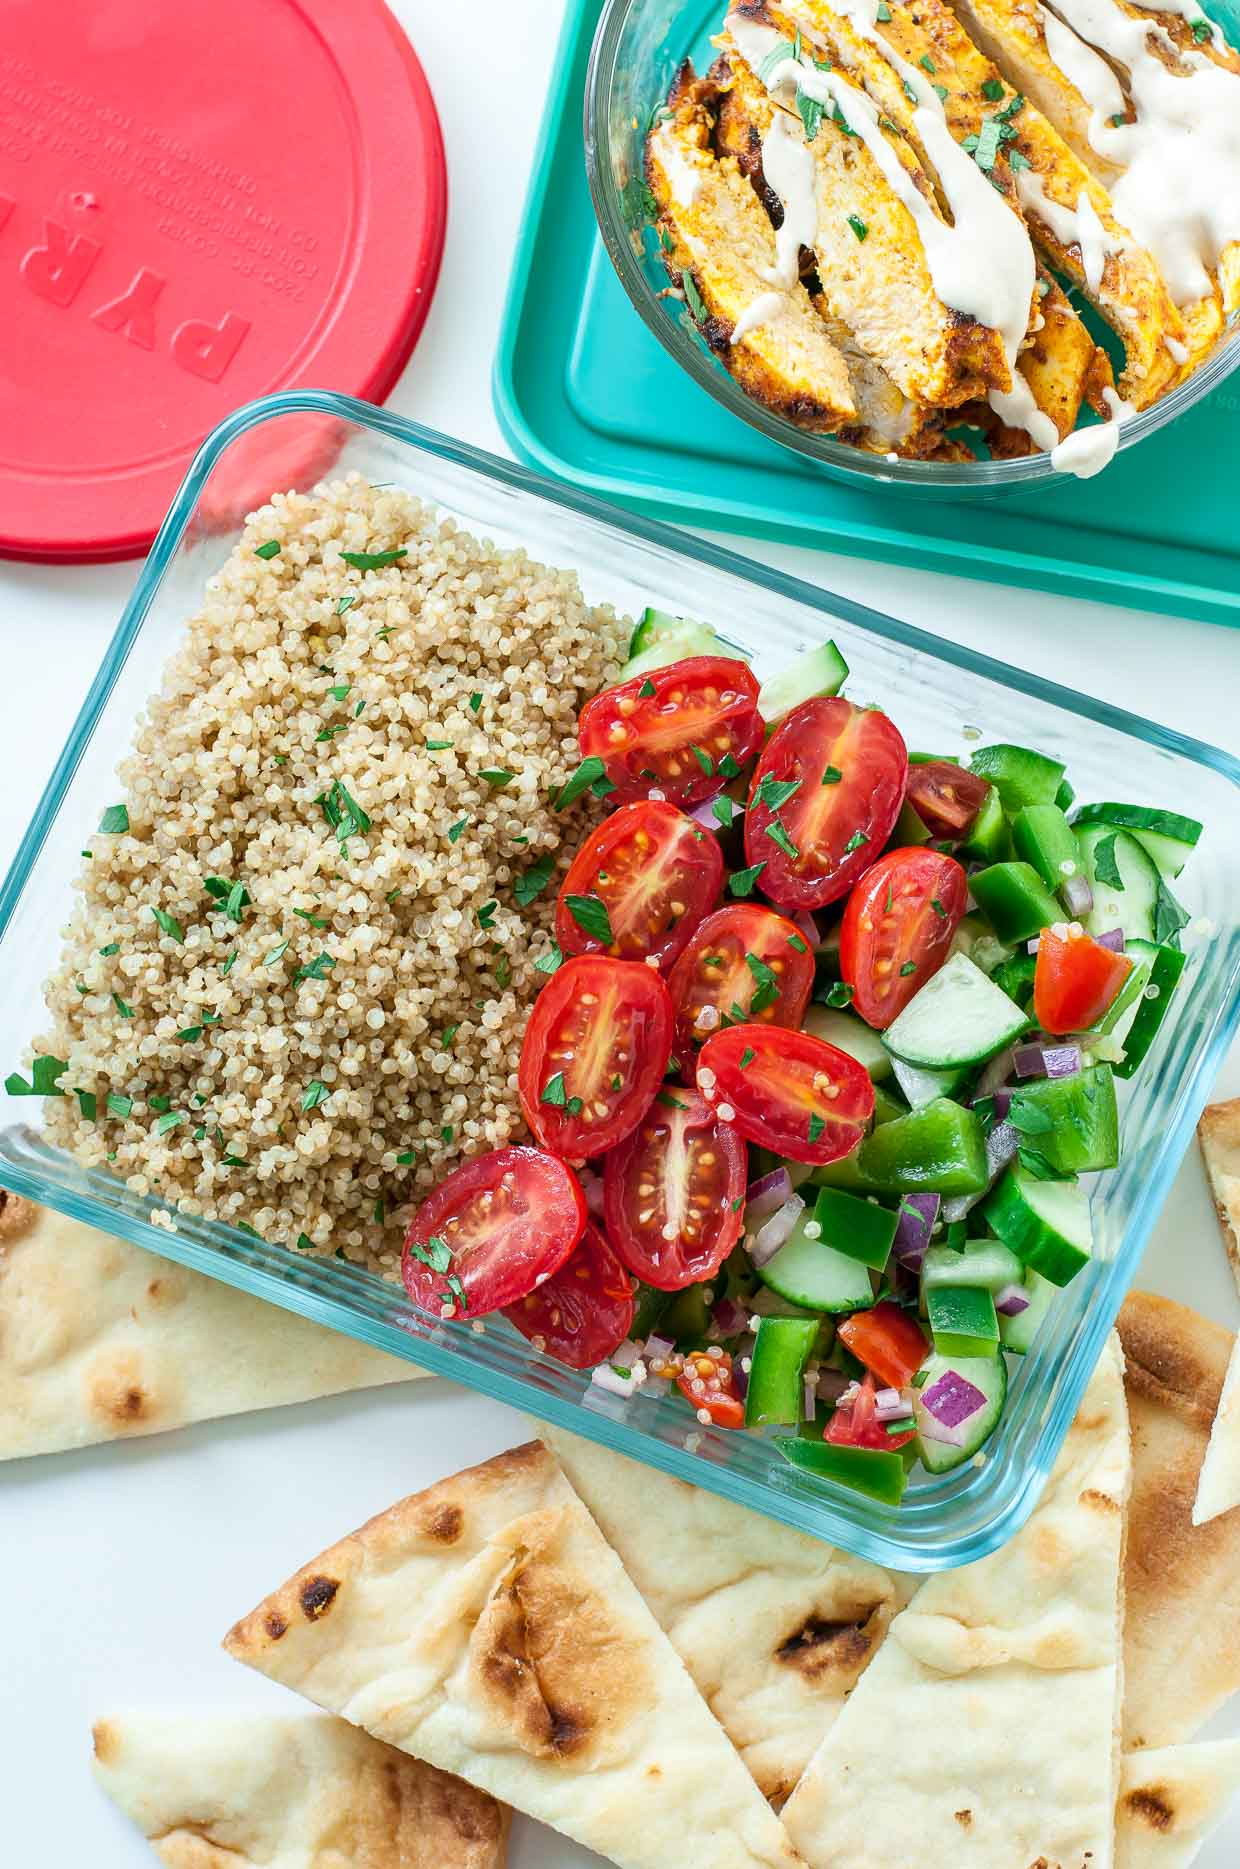 Loving this recipe for healthy Chicken Shawarma Quinoa Bowls with a super easy hack for creating make-ahead meal-prep style lunches for work or school. The flavors are out of this world!!